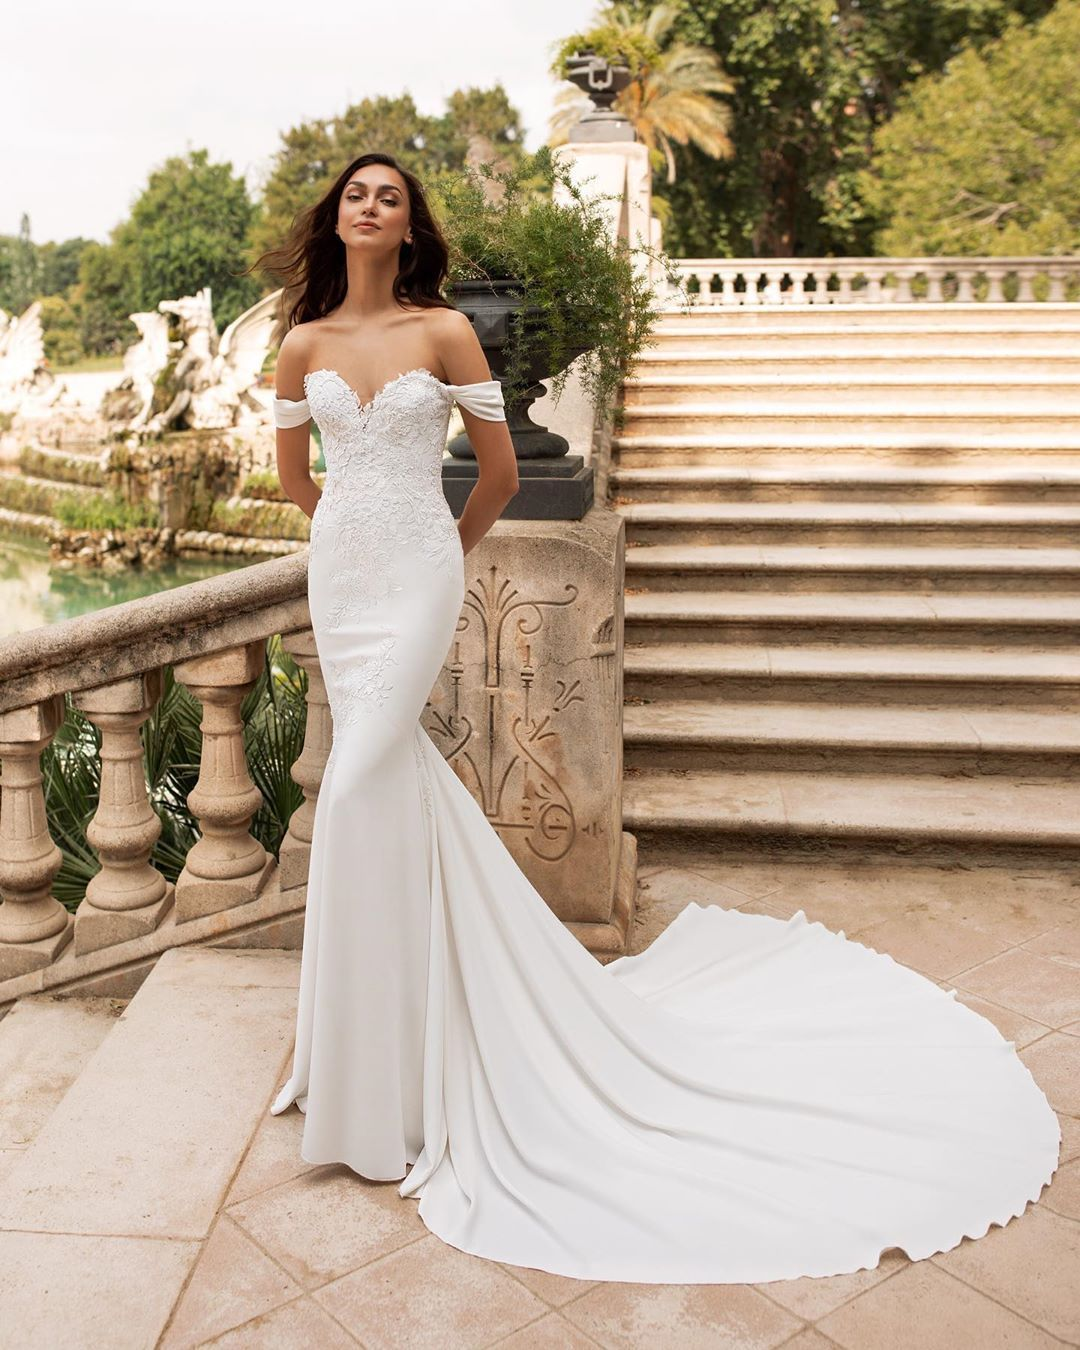 Pronovias On Instagram Dante A Spectacular Off The Shoulder Mermaid Dress With An Wedding Dress Long Sleeve Pronovias Wedding Dress Long Sleeve Bridal Gown [ 1350 x 1080 Pixel ]